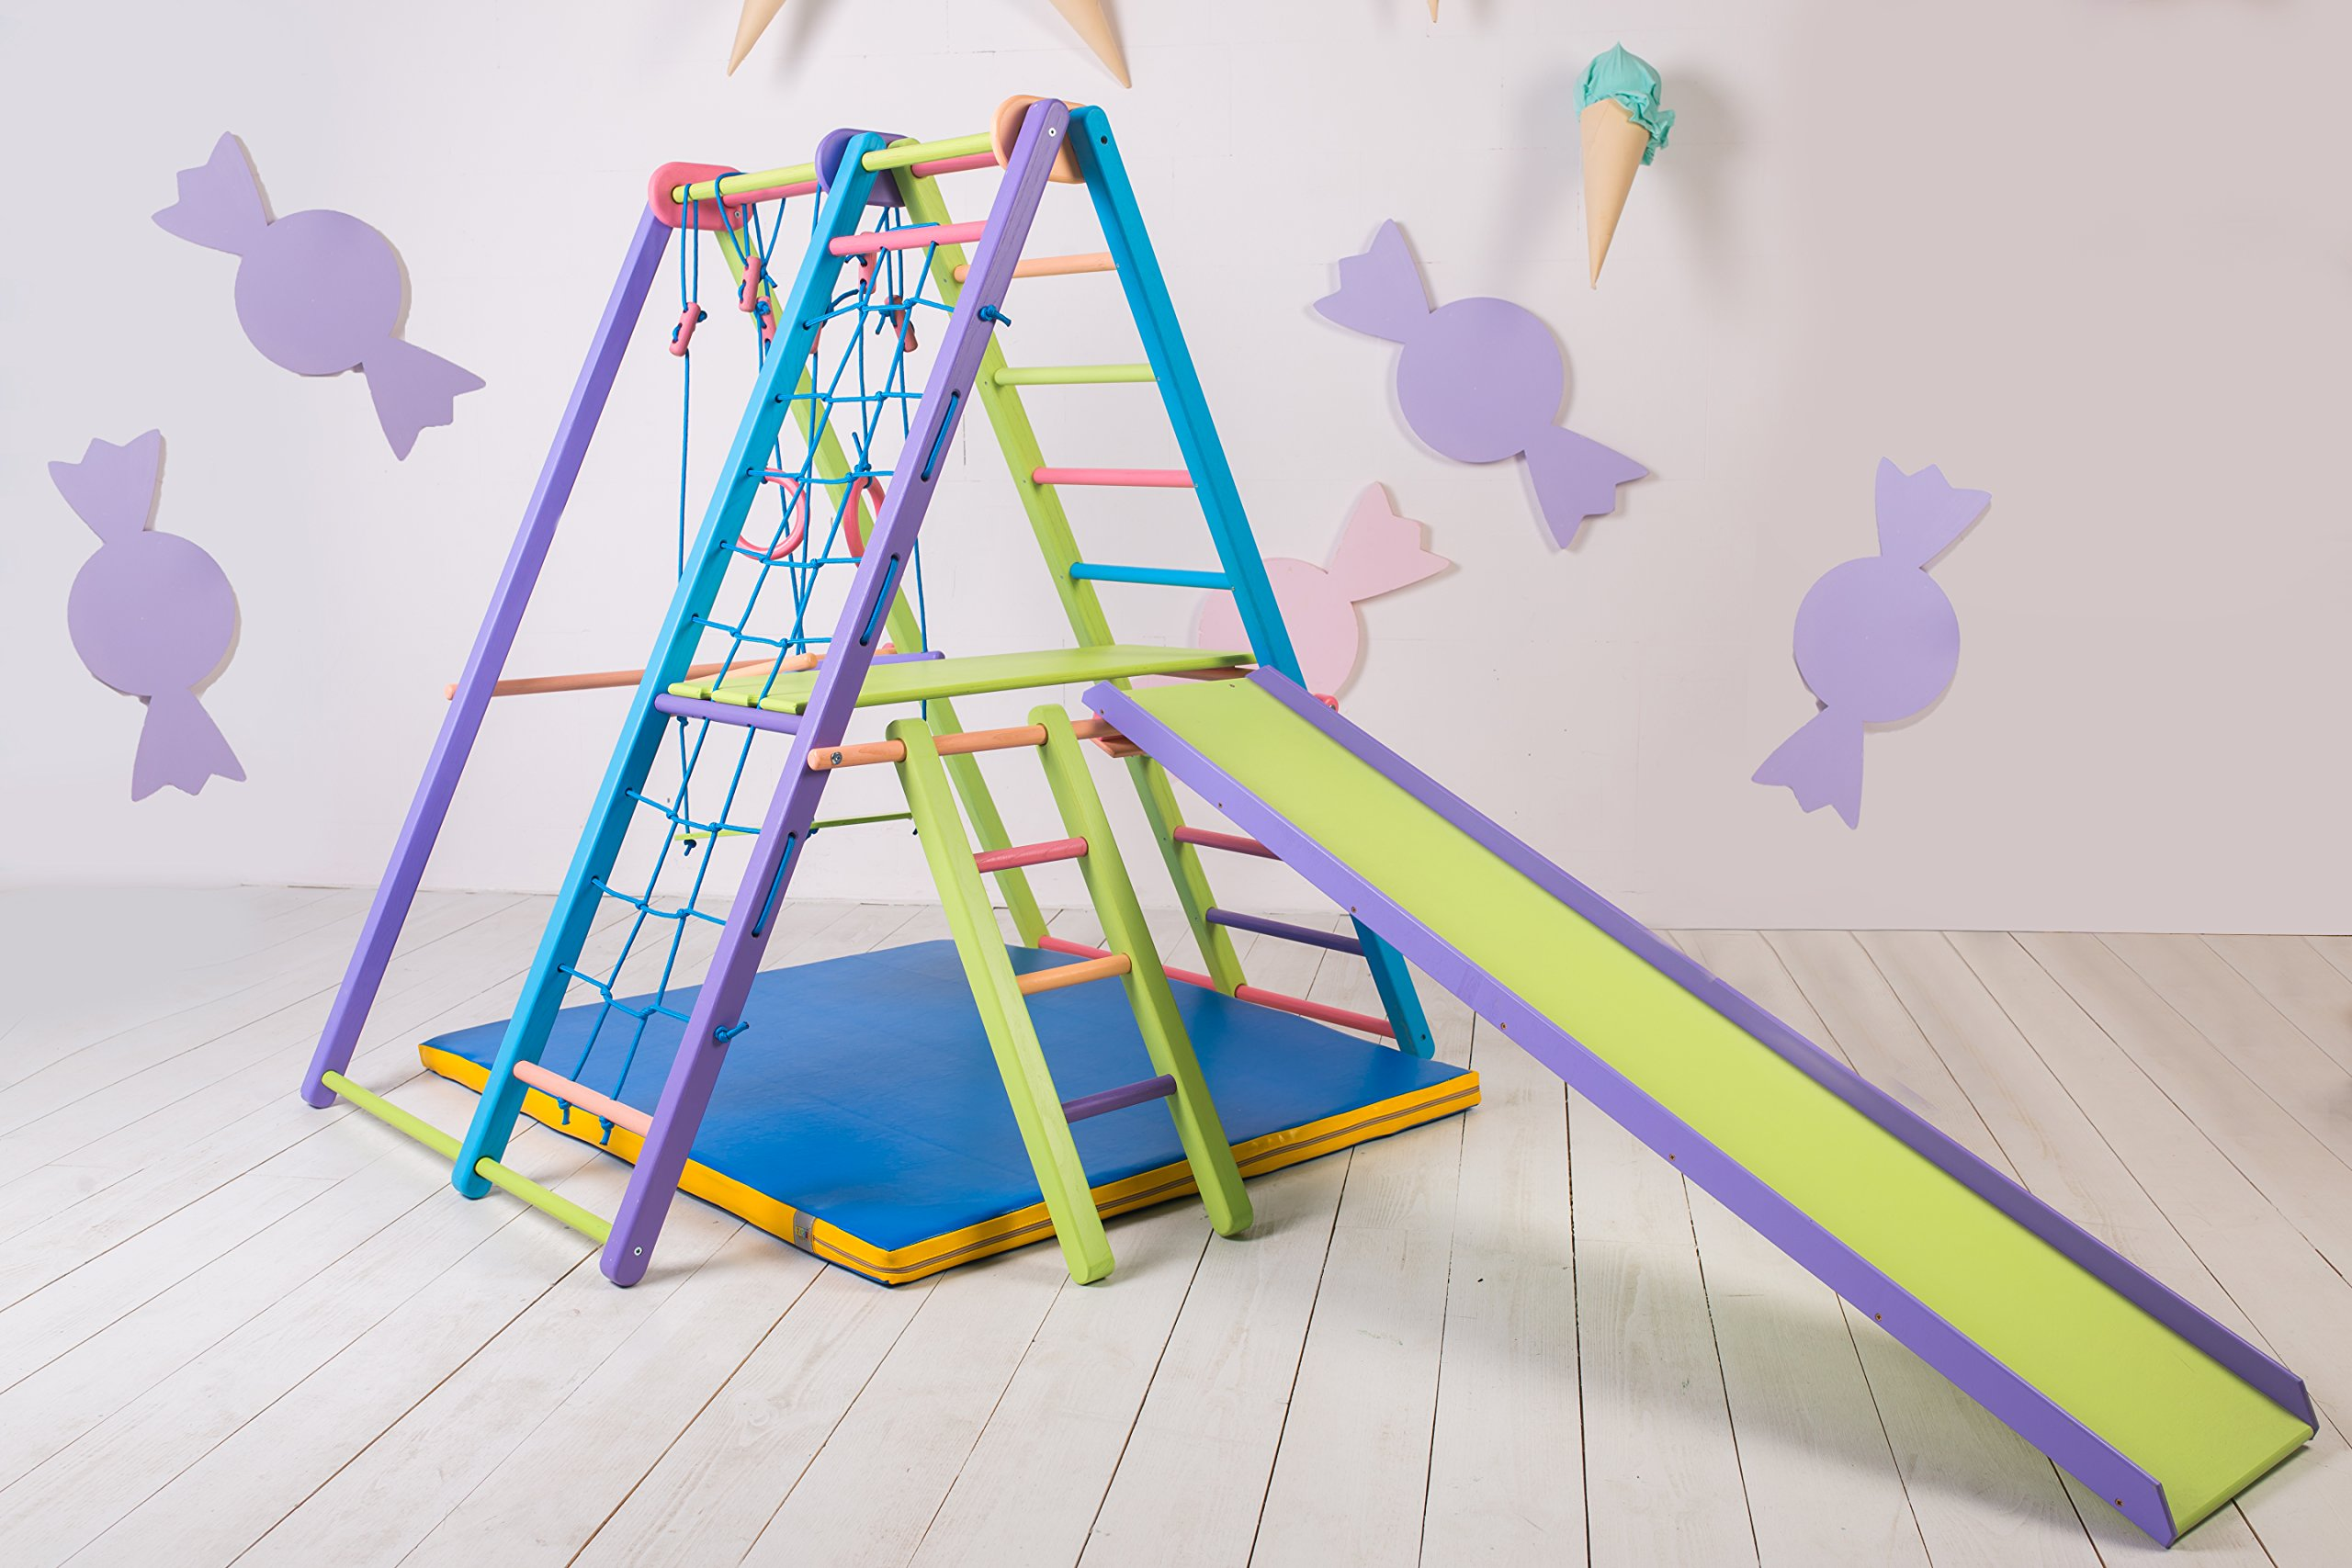 EZPlay Indoor Jungle Gym – Sturdy Toddler Playset, Foldable Kids Play Area with Monkey Bars, Climbing Ladder, Toddler Slide, Swing Set & Rings, Play Structure for Ages 1-5